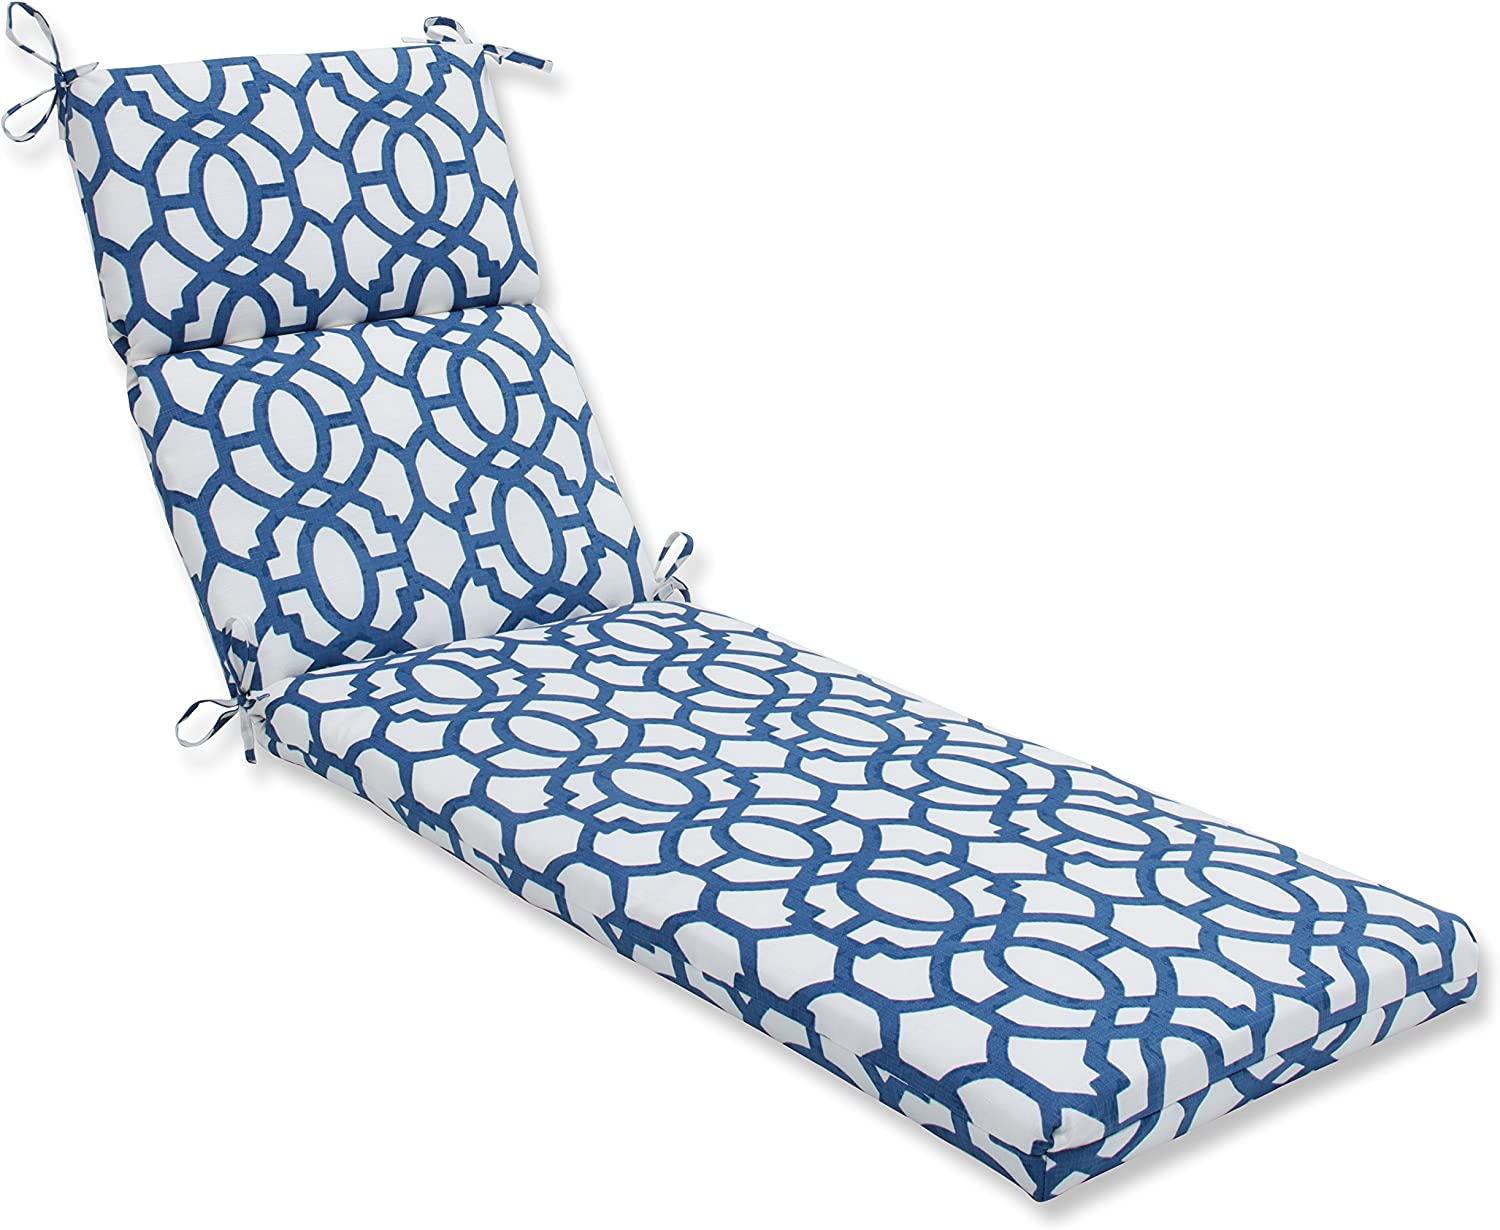 Pillow Max 69% OFF High material Perfect Outdoor Indoor Nunu Chaise 72 Cushion Geo Lounge